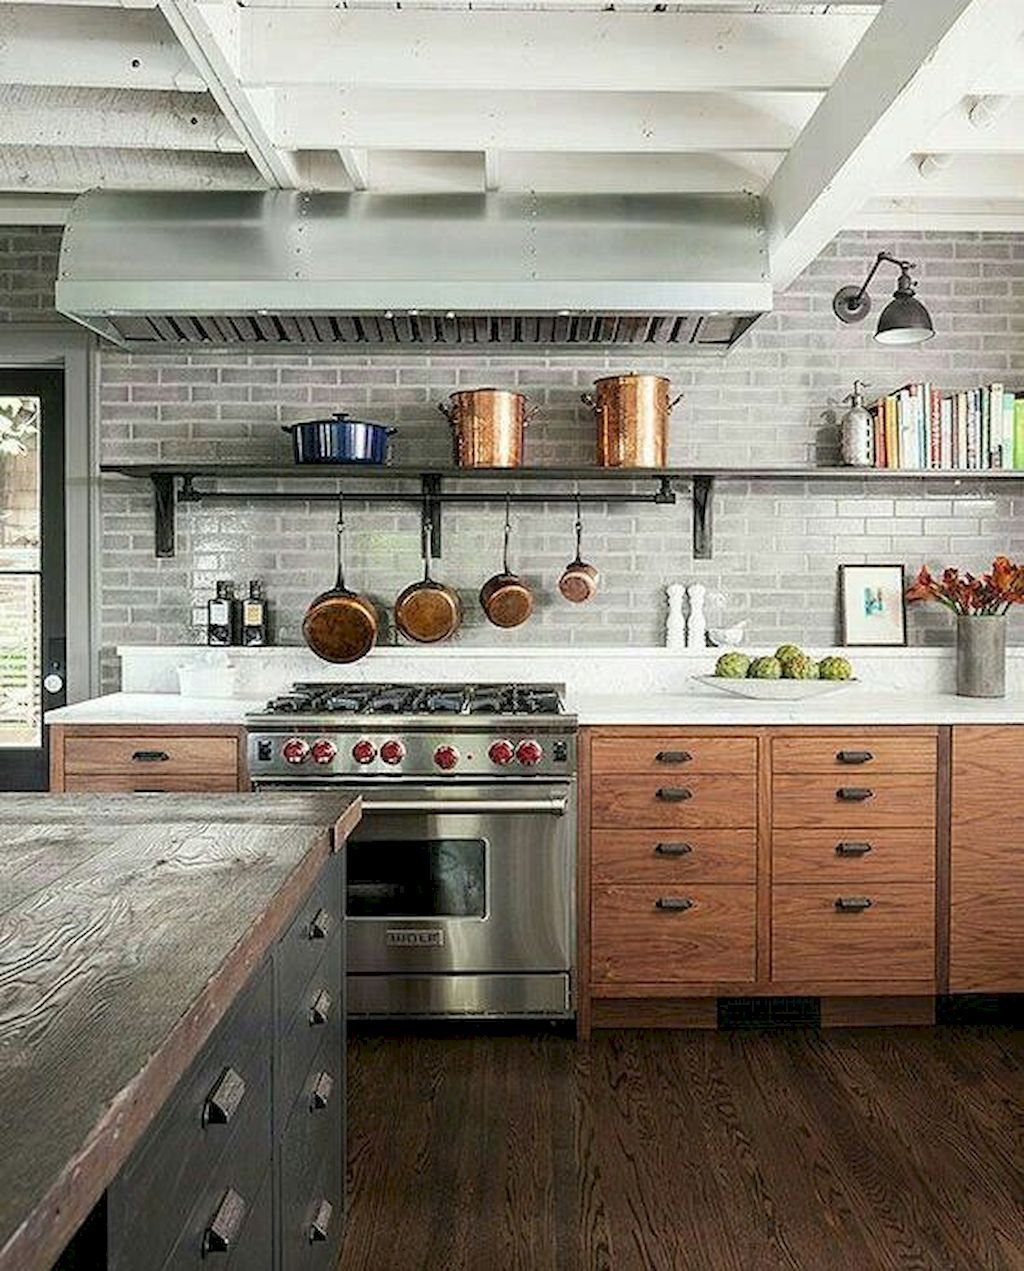 Amazing 60 Awesome Modern Kitchens Ideas Remodeling On A Budget Download Free Architecture Designs Scobabritishbridgeorg